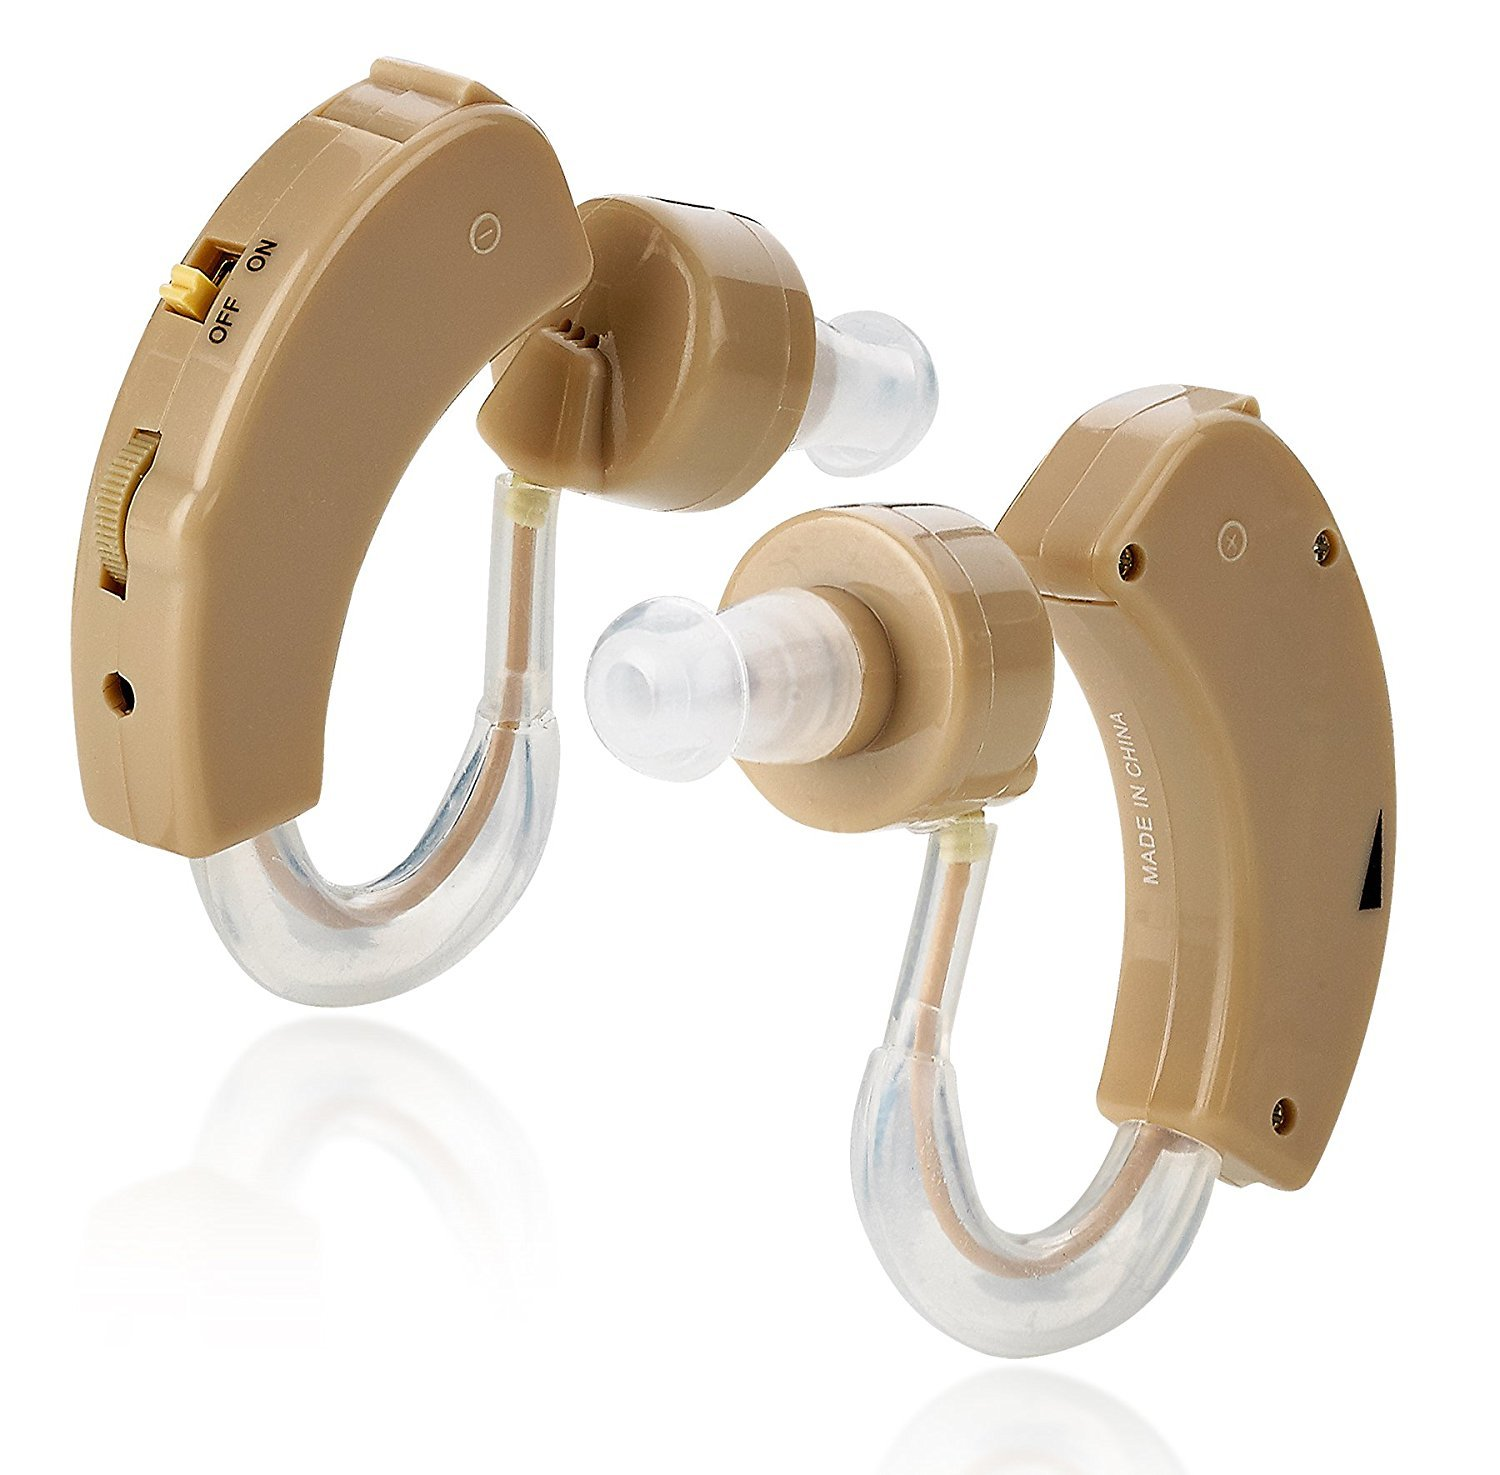 Medca Bte Behind The Ear Sound Amplifier Super Mini Size Medical Hearing Aid Circuitry And Digital Enhancer With Noise